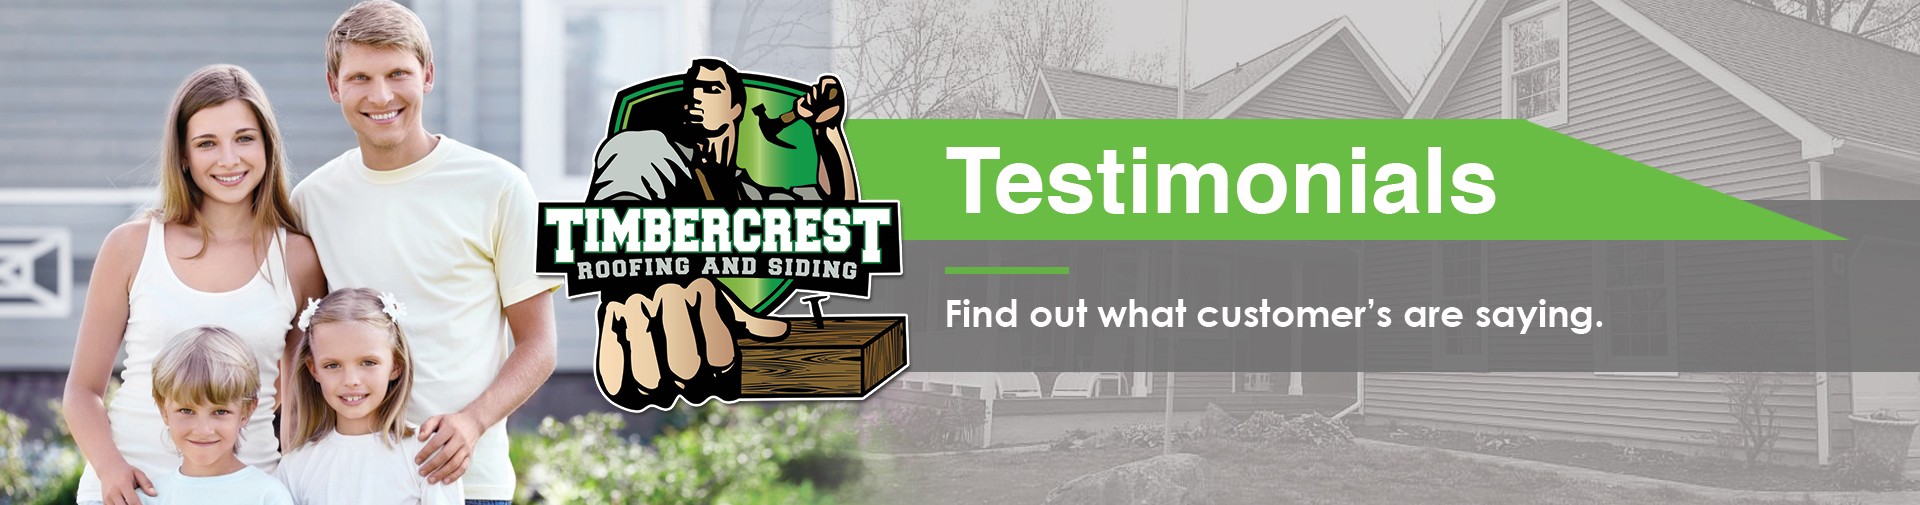 Timbercrest Roofing and Siding Testimonials